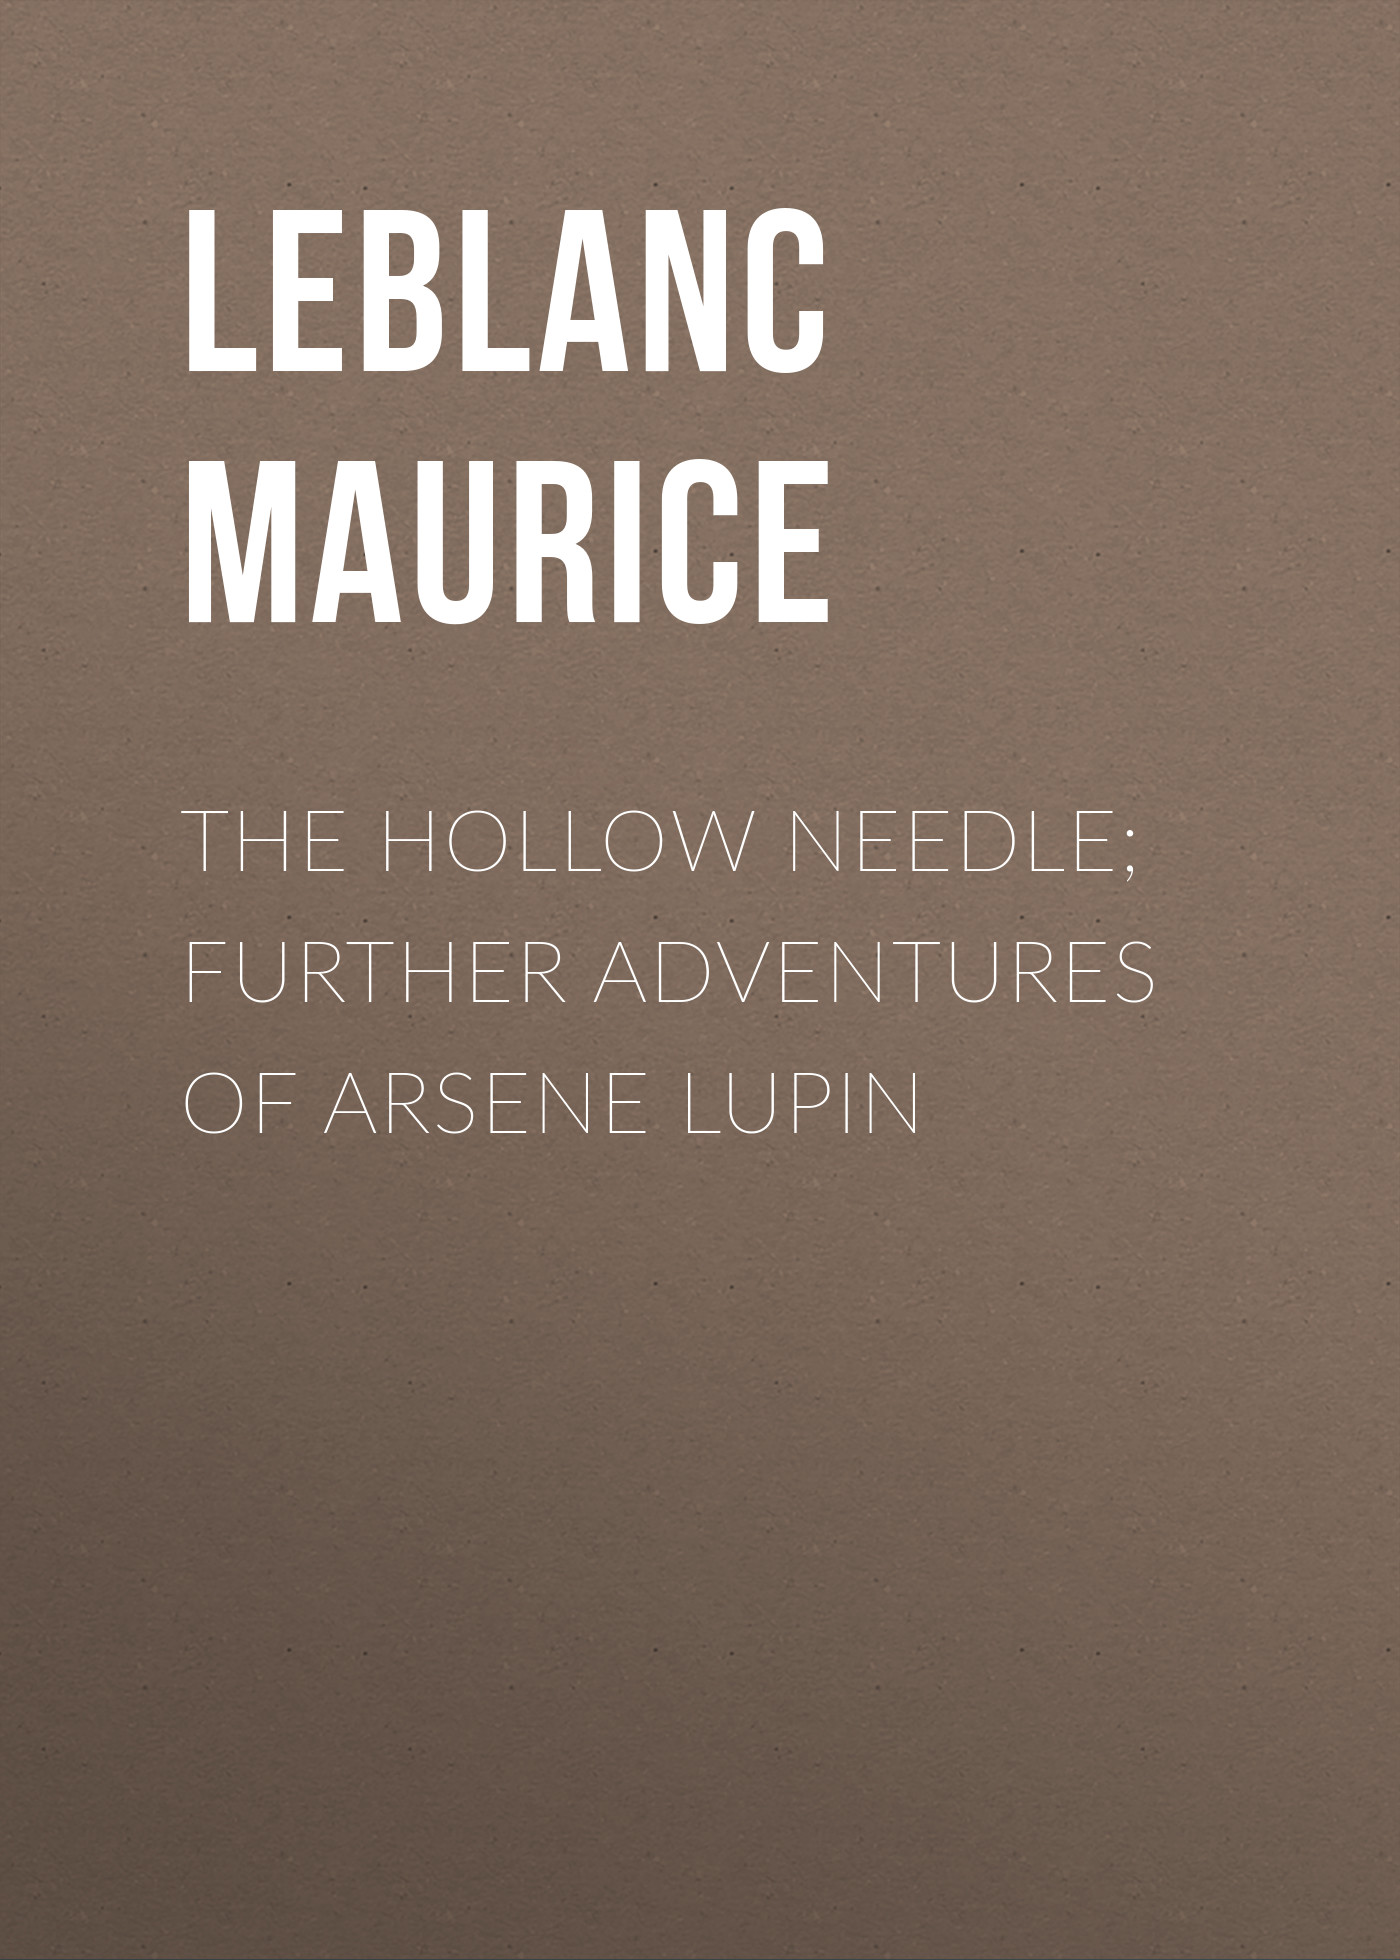 Leblanc Maurice The Hollow Needle; Further adventures of Arsene Lupin leblanc maurice the confessions of arsène lupin